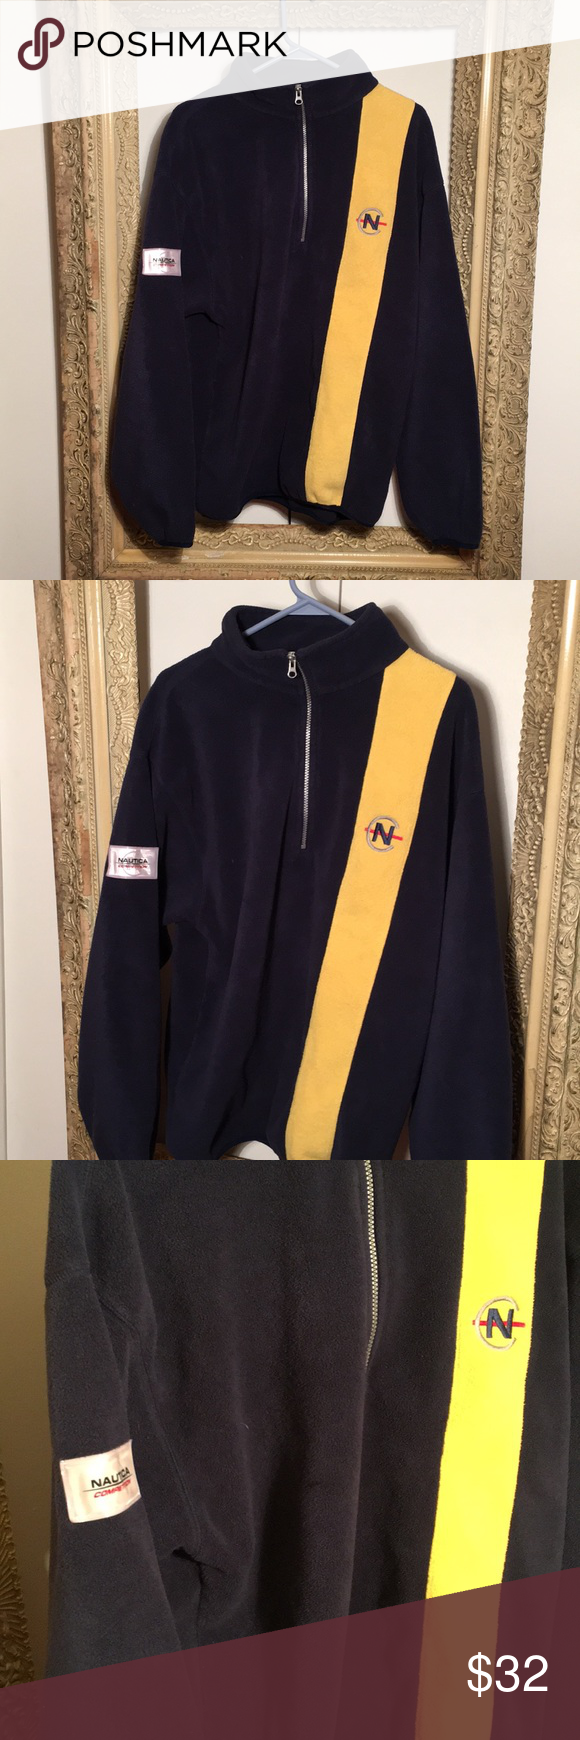 Vintage nautica competition zip up fleece sweater my posh closet